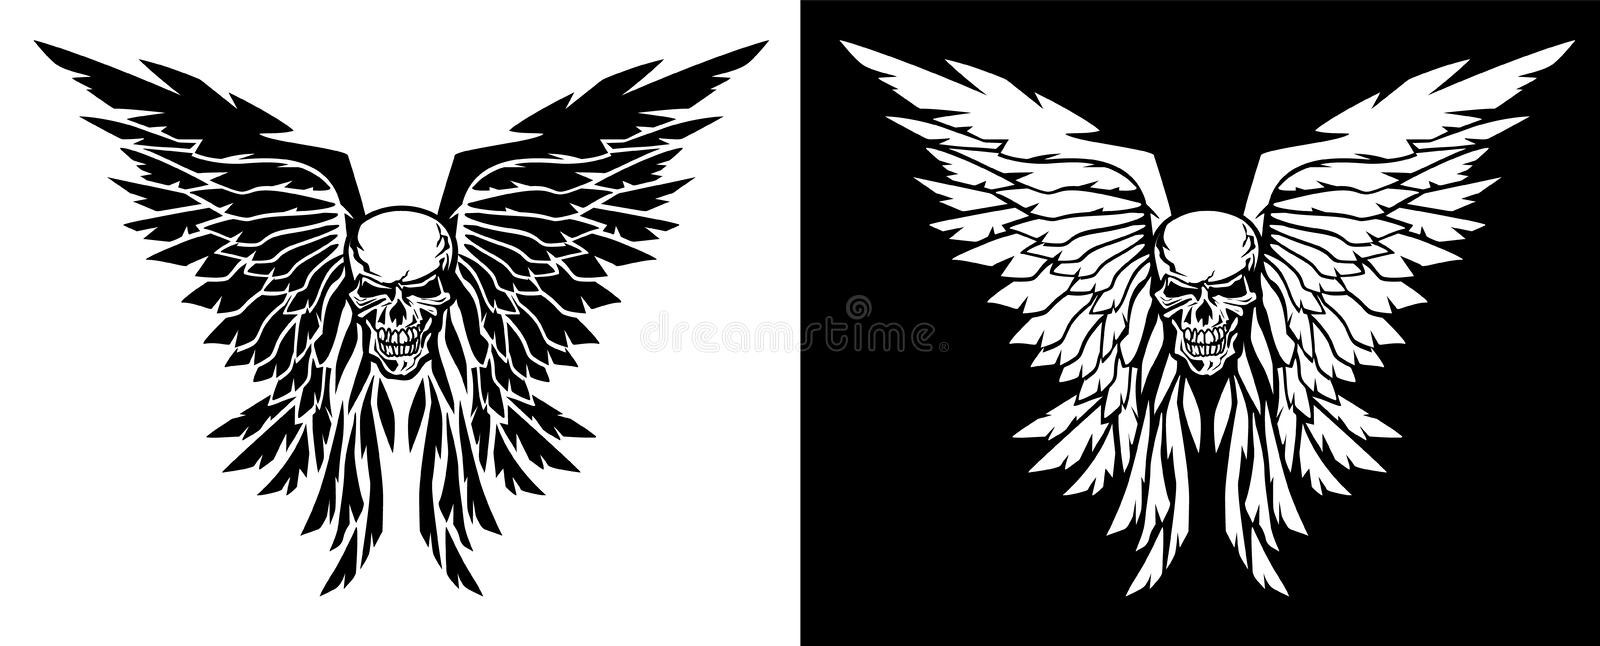 Classic skull and wings vector illustration in both black and white versions stock illustration